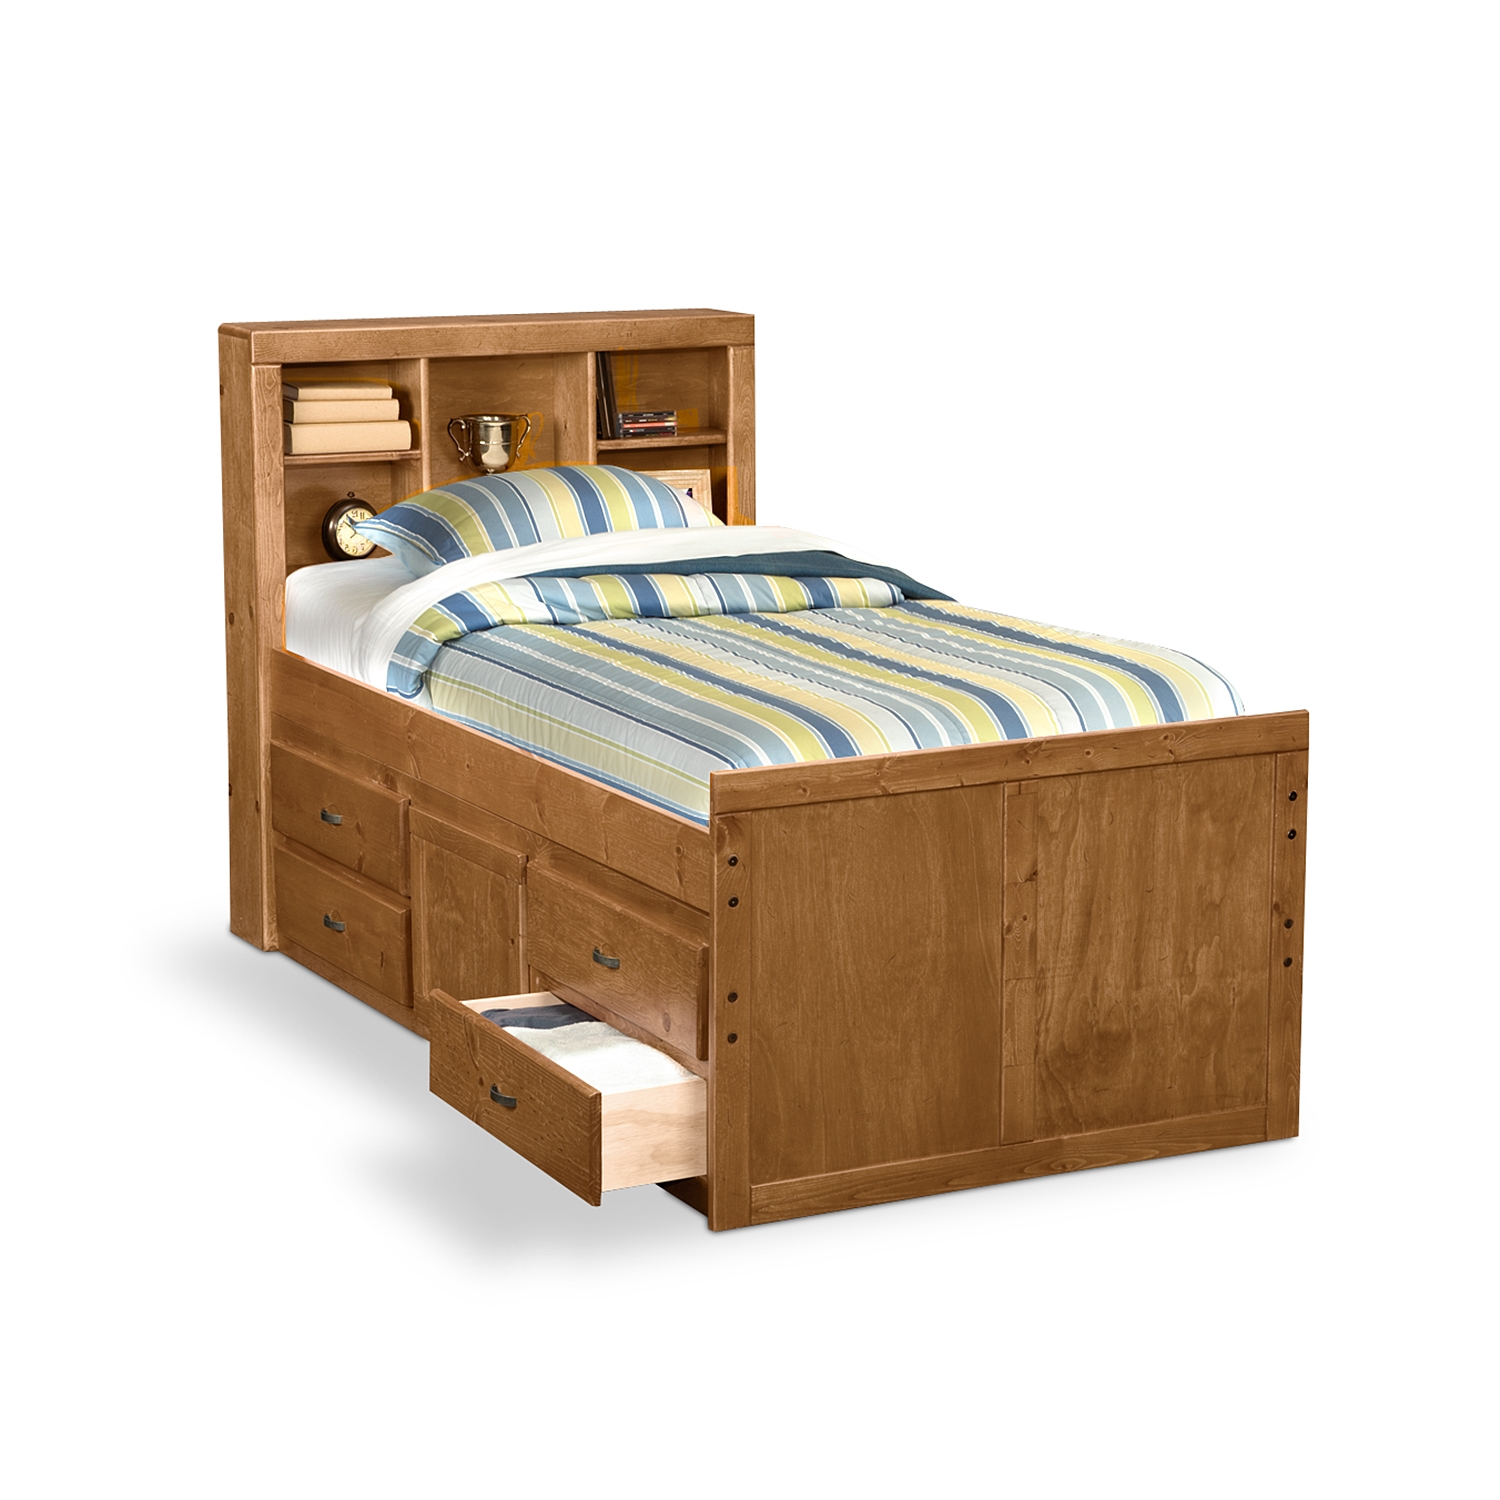 wooden twin bed with drawers underneath and racks on headboard plus stripped bed - Queen Bed Frame With Storage Underneath